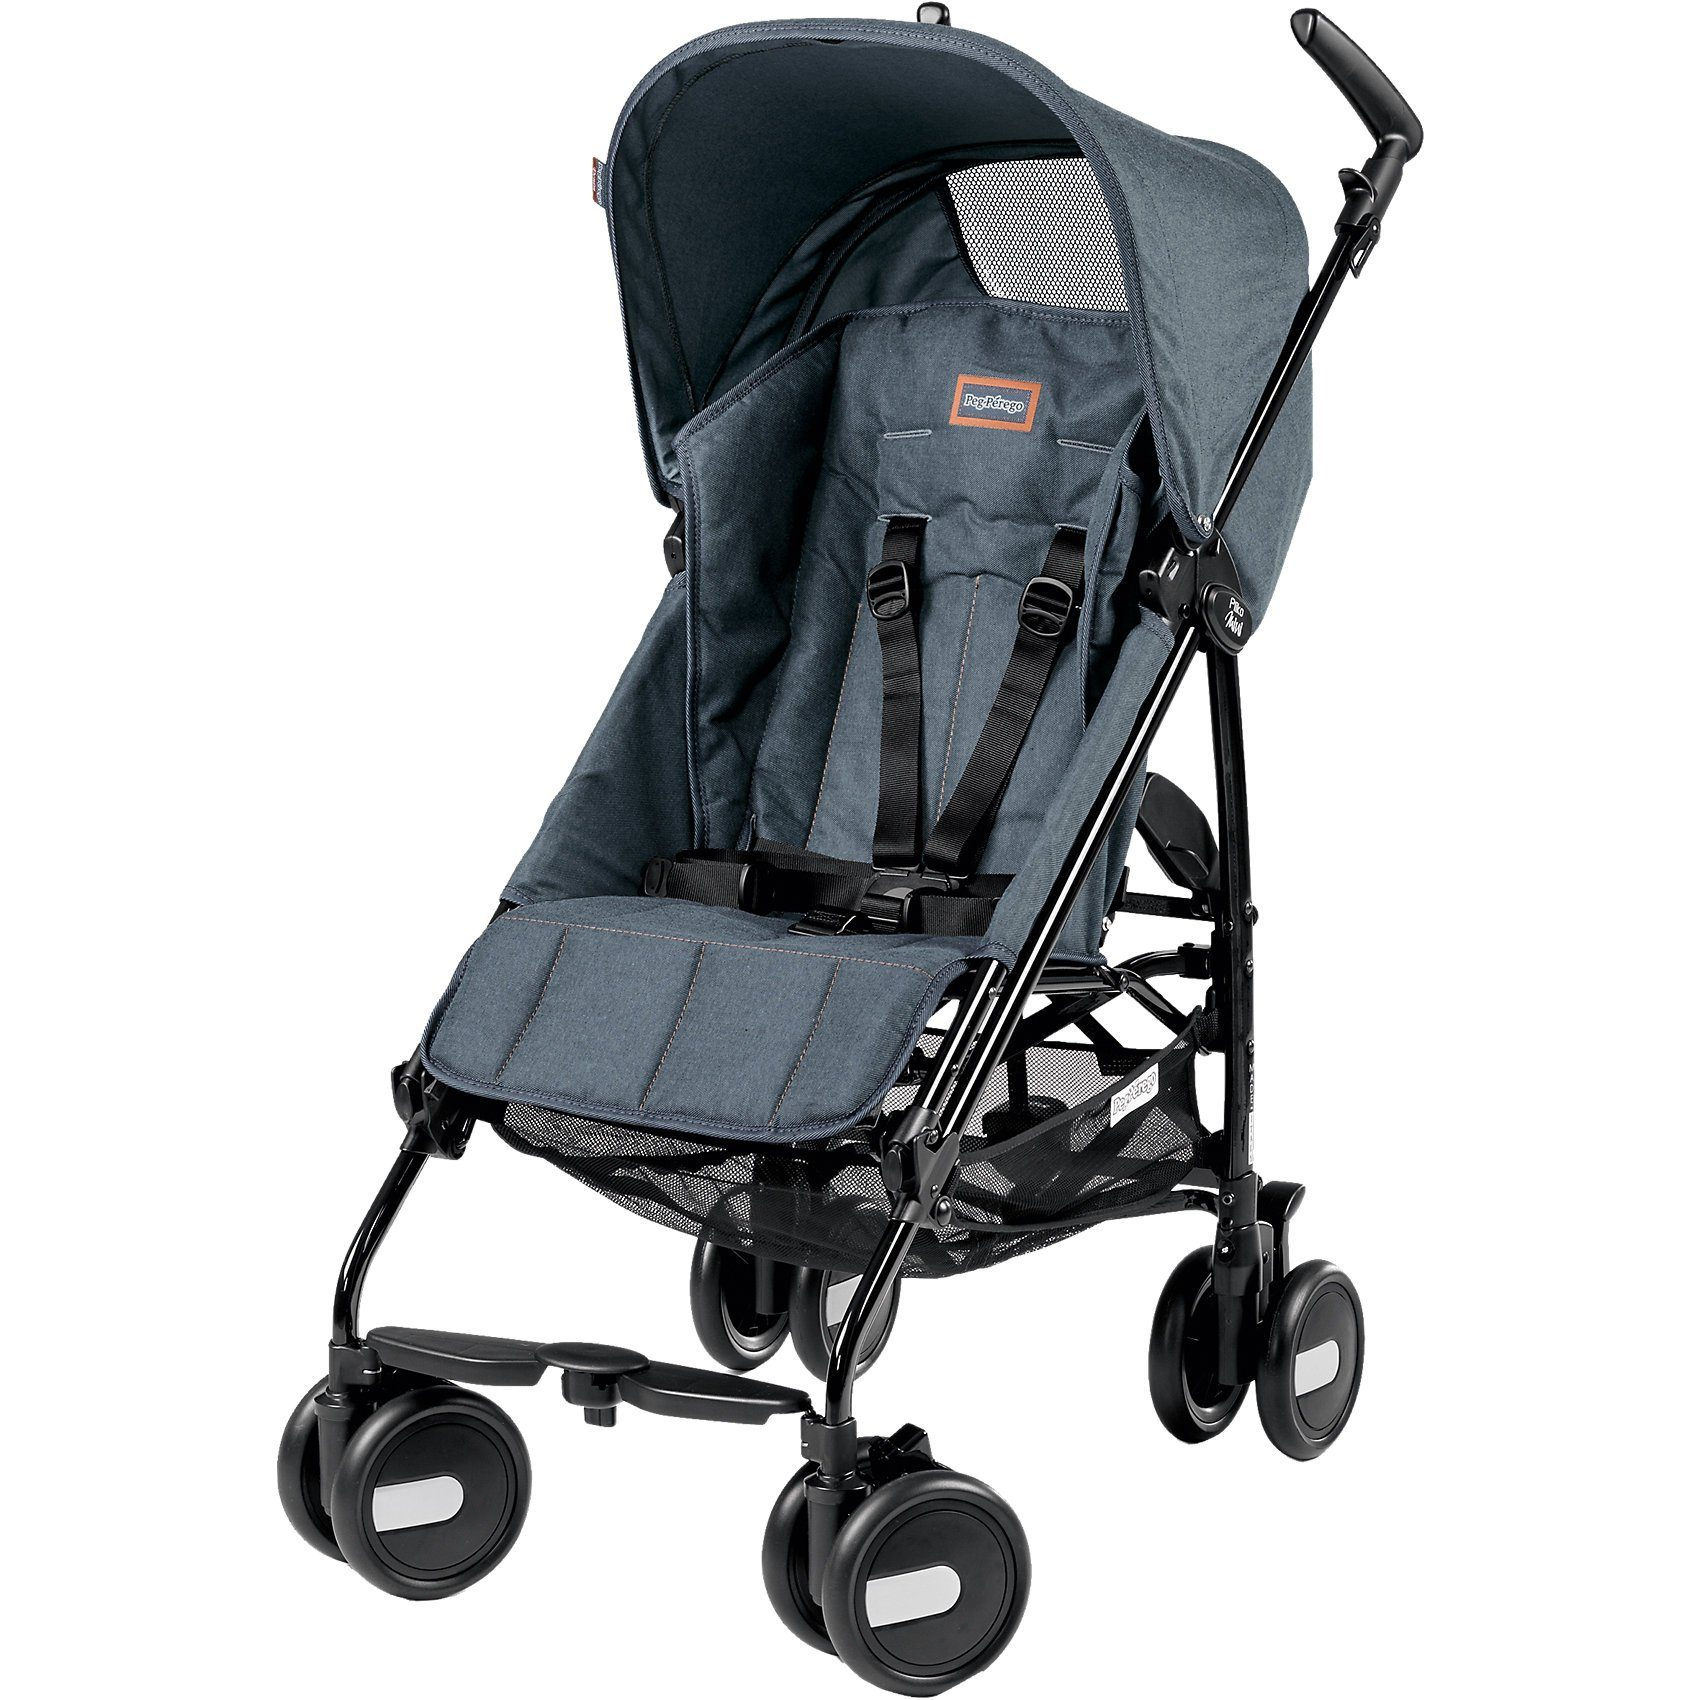 Peg Perego Buggy Pliko Mini Classico, Blue Denim, 2016